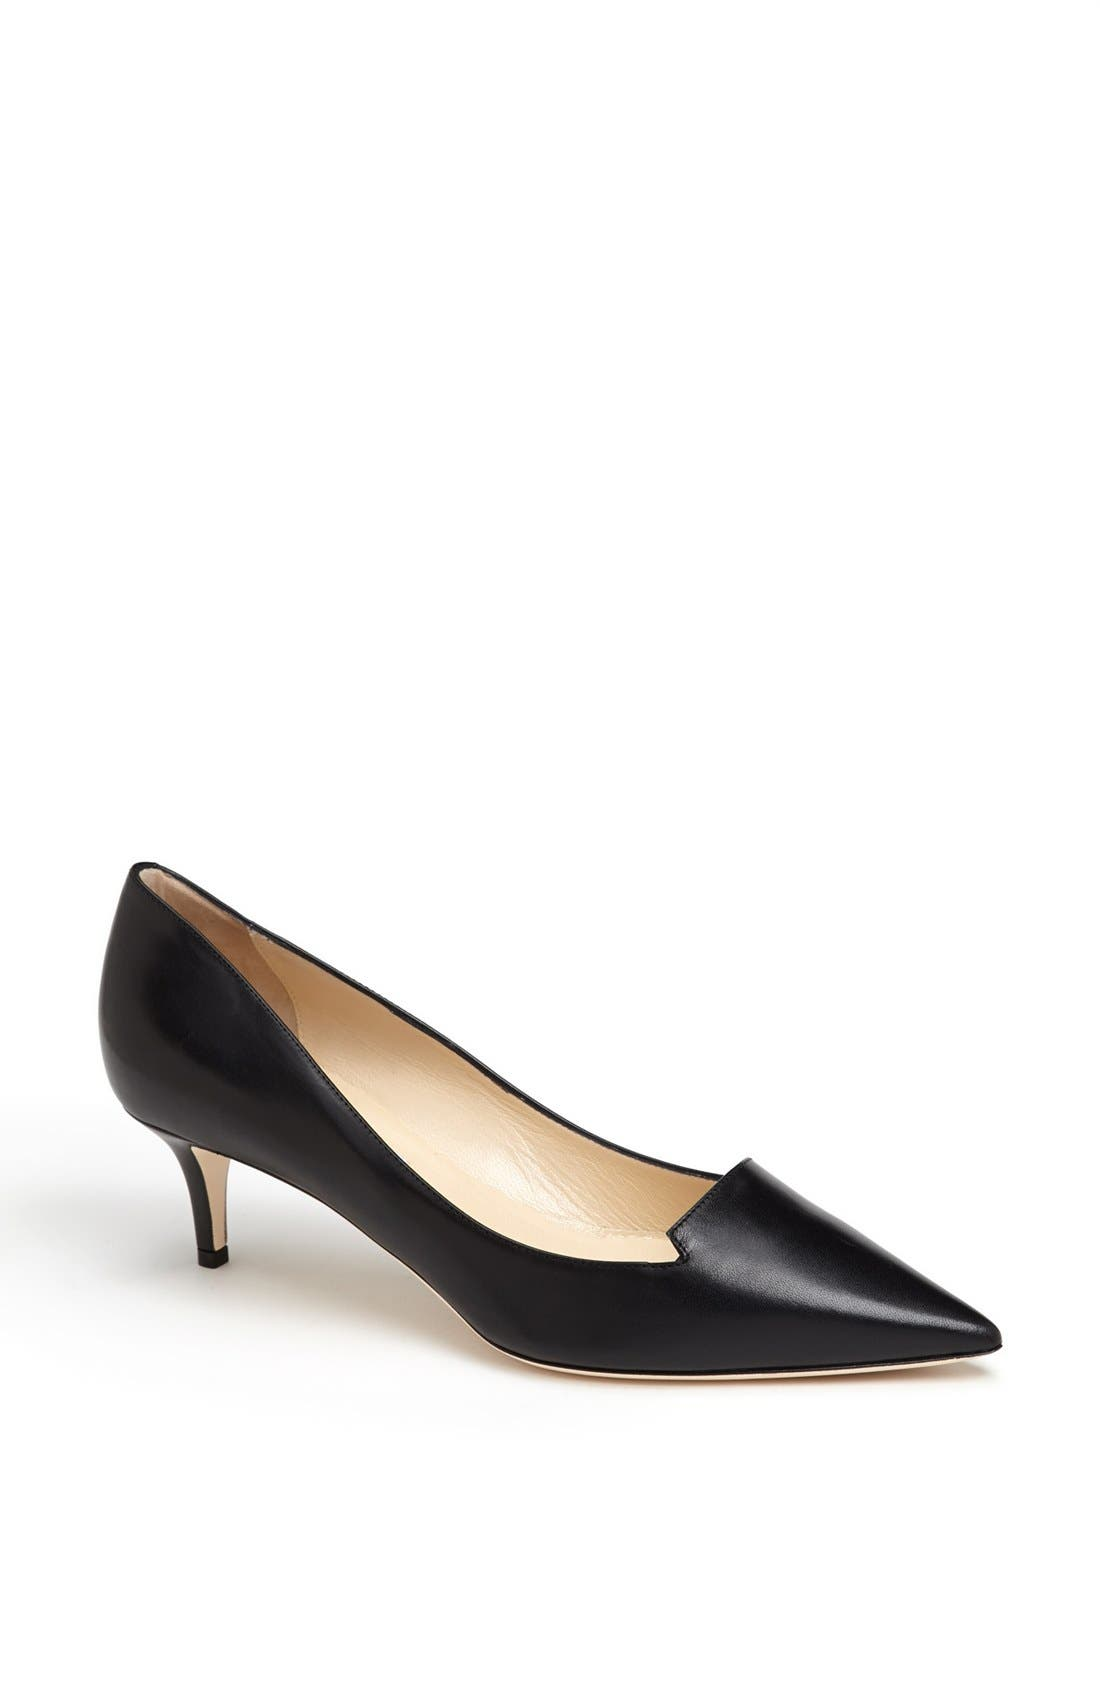 Main Image - Jimmy Choo 'Allure' Pump (Women)